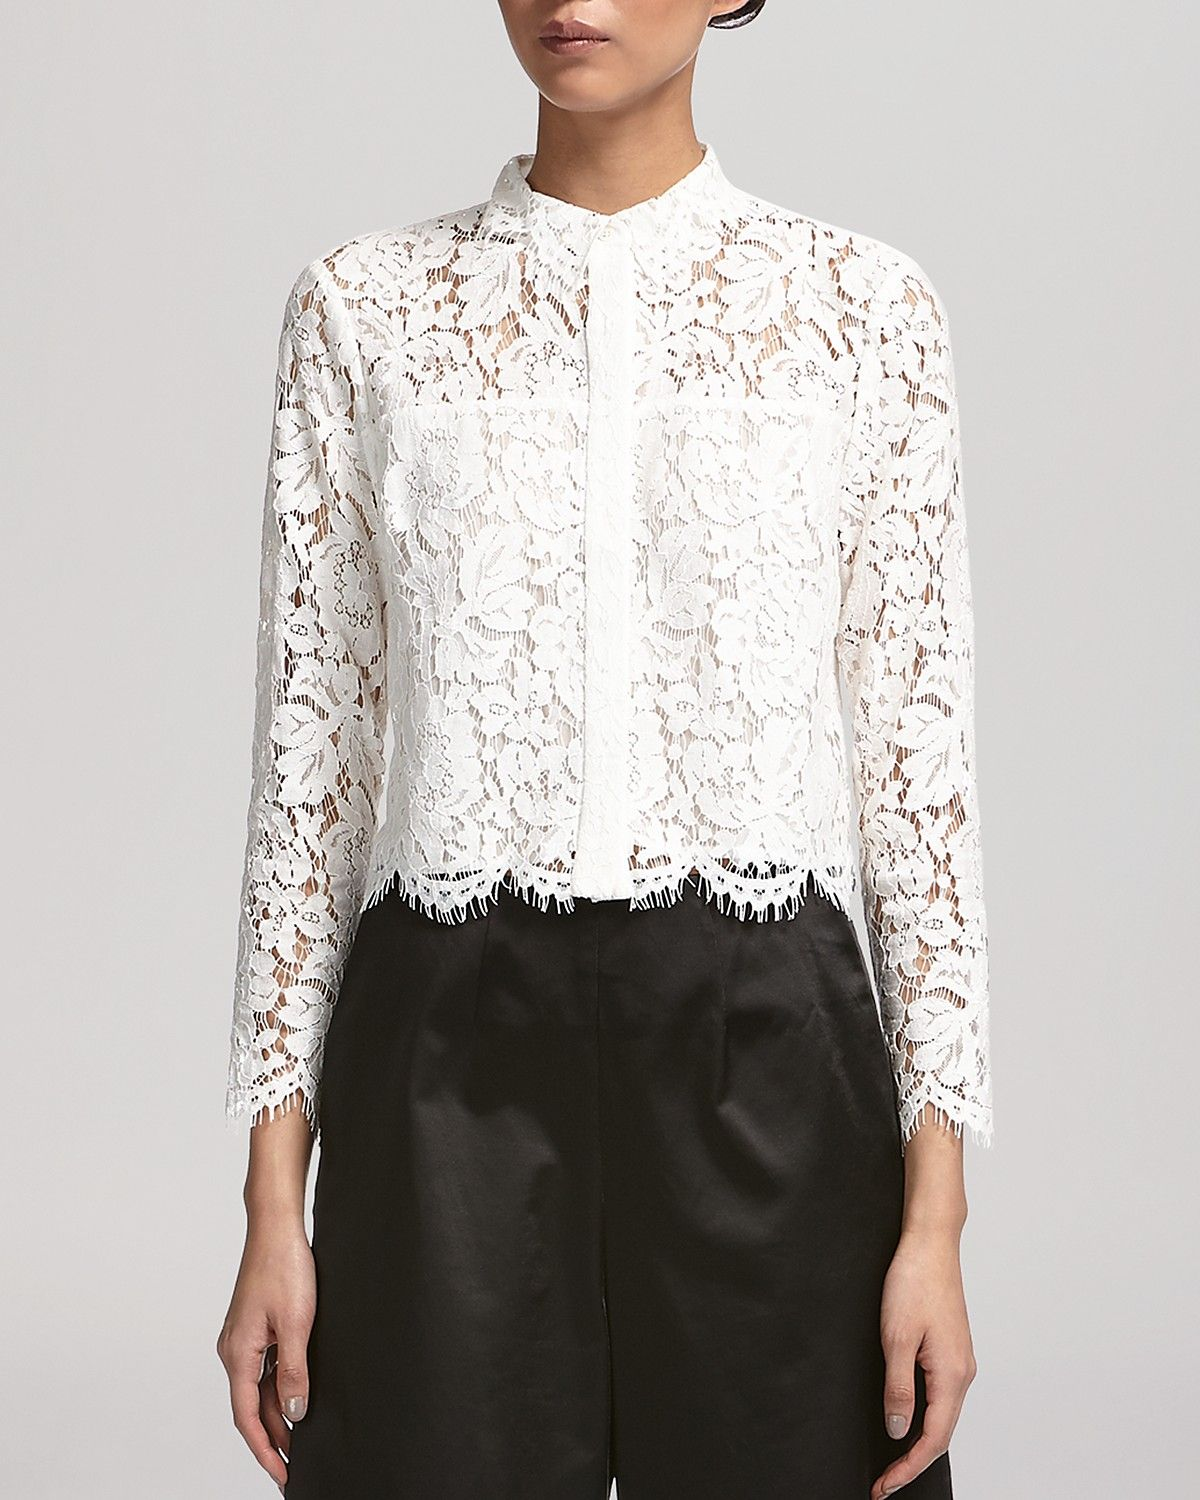 d453694df7dc46 Sandro Coralisse Eyelet-Lace Top | Fashion Inspiration in 2019 | Lace tops,  Lace, Eyelet lace